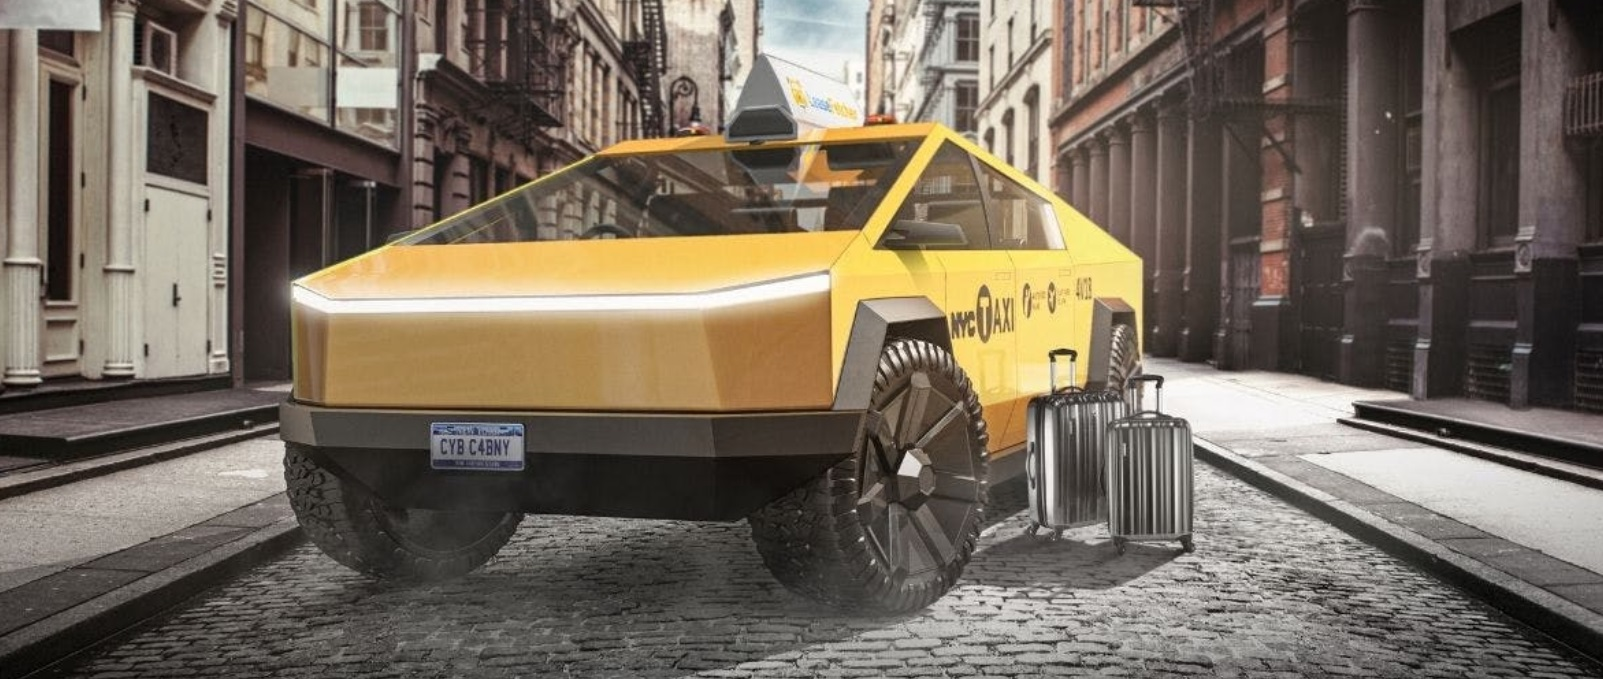 PHOTO Tesla Cybertruck New York City Taxi